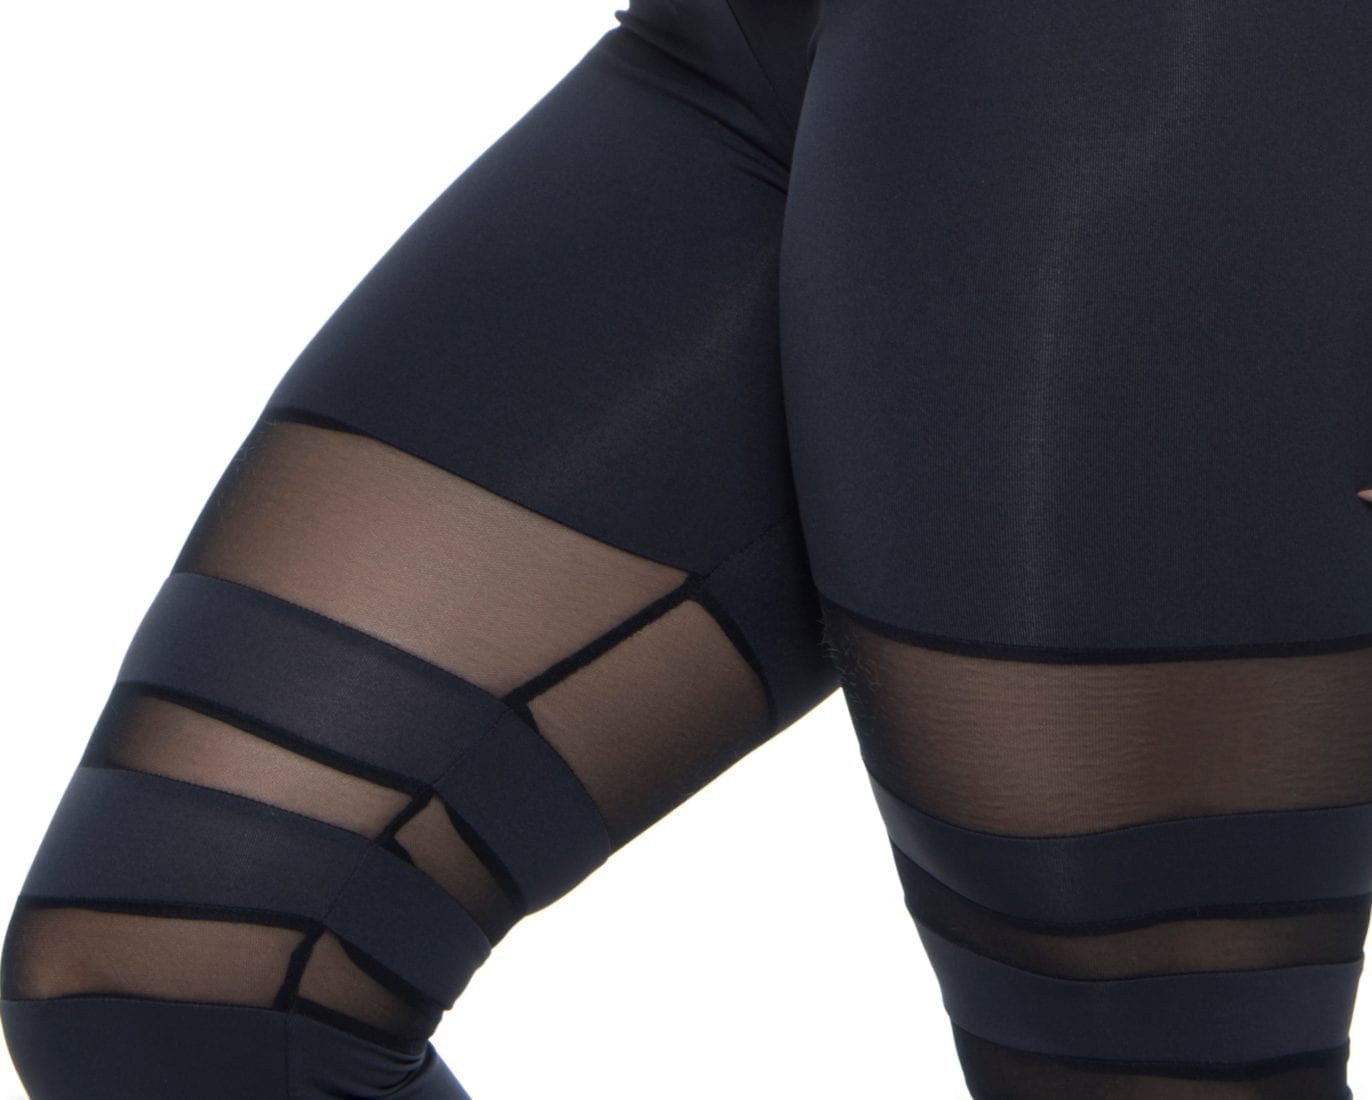 BOMBSHELL BRAZIL Leggings SEXY COLLEGE Black Mesh -Sexy Leggings